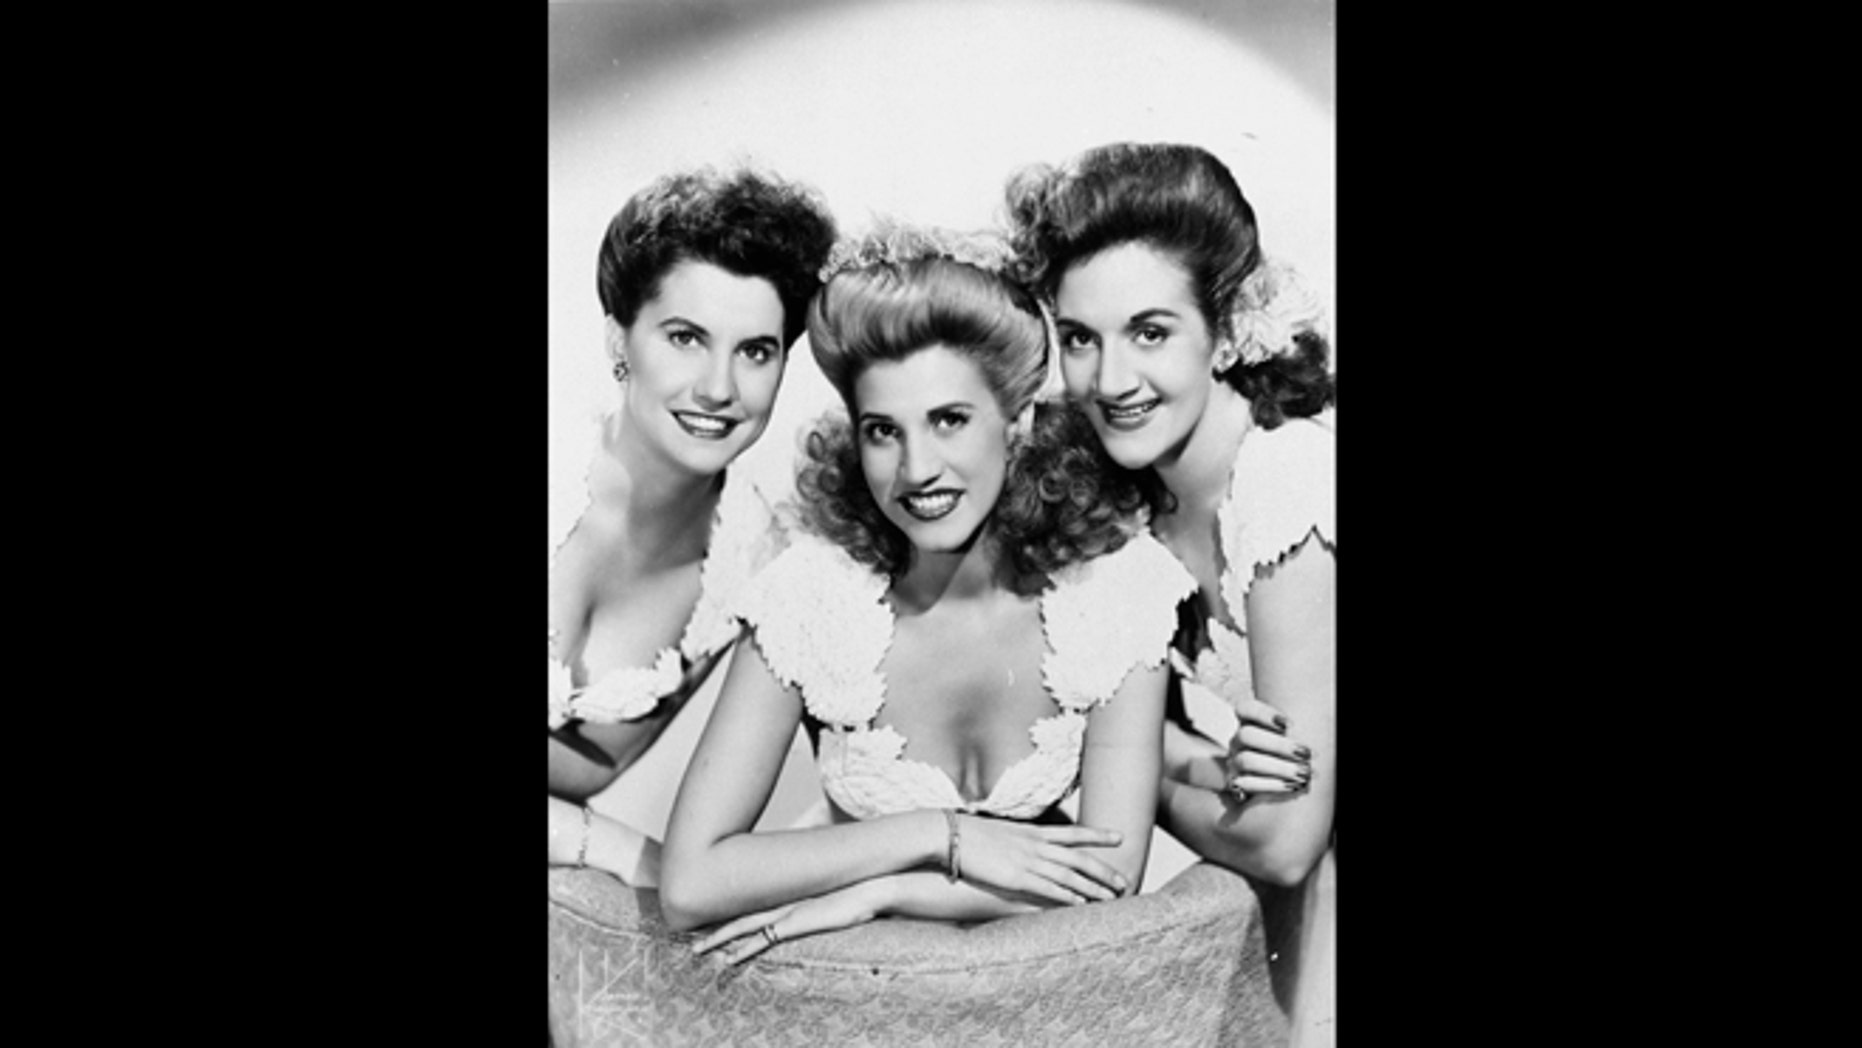 This 1947 publicity photo shows the pop vocal trio, The Andrews Sisters, from left, Maxine Andrews, Patty Andrews, and LaVerne Andrews. Patty Andrews died Wednesday, Jan. 30, 2013, at her home in suburban Northridge of natural causes, said family spokesman Alan Eichler.